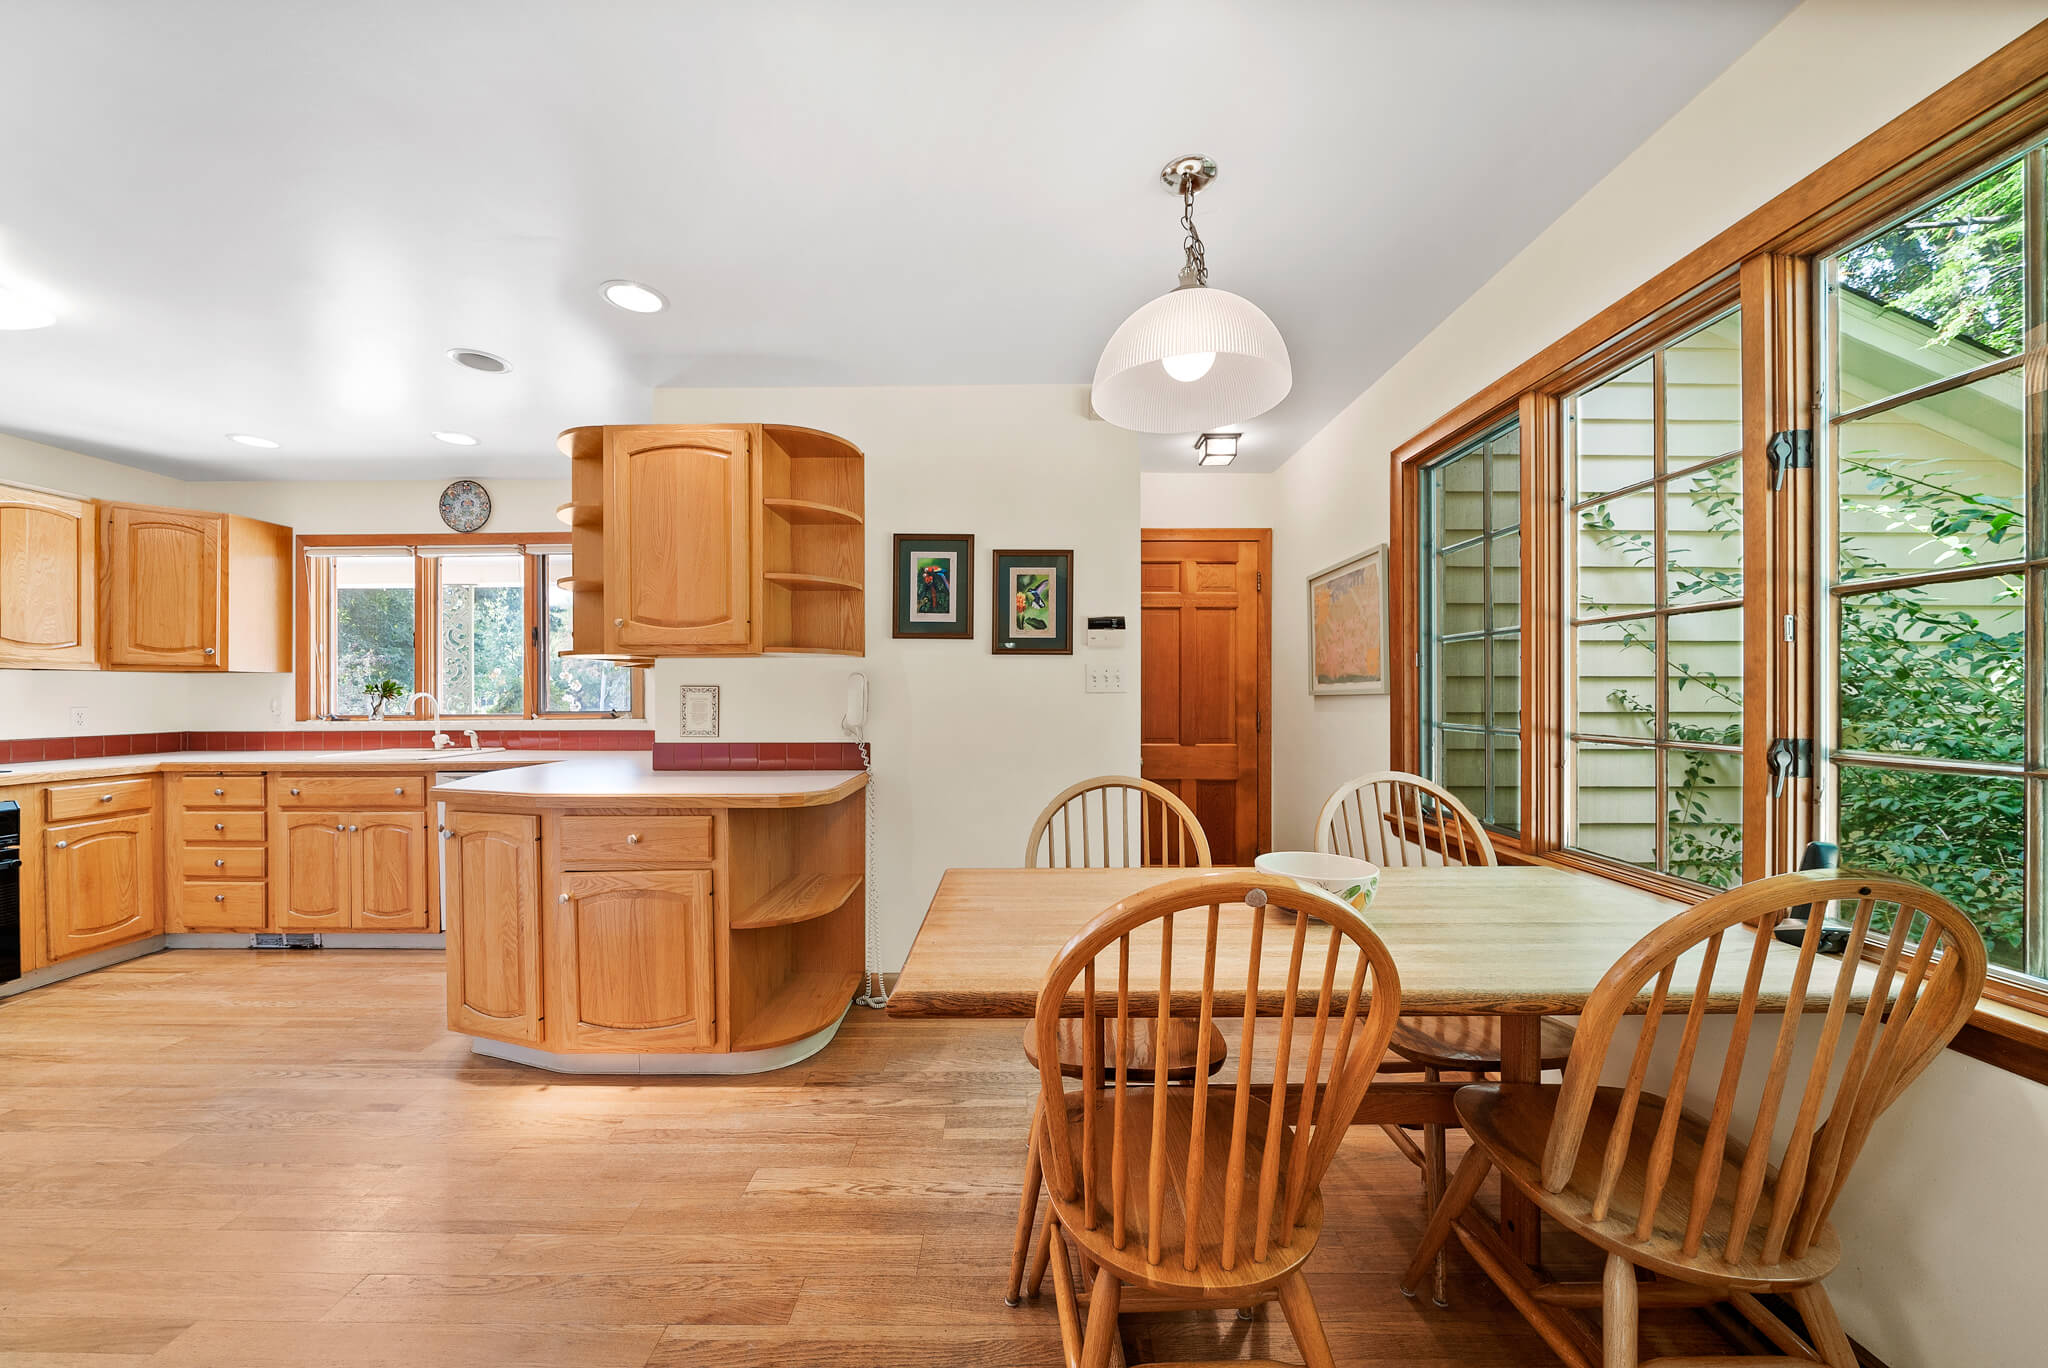 Oak cabinetry and real hardwood floors